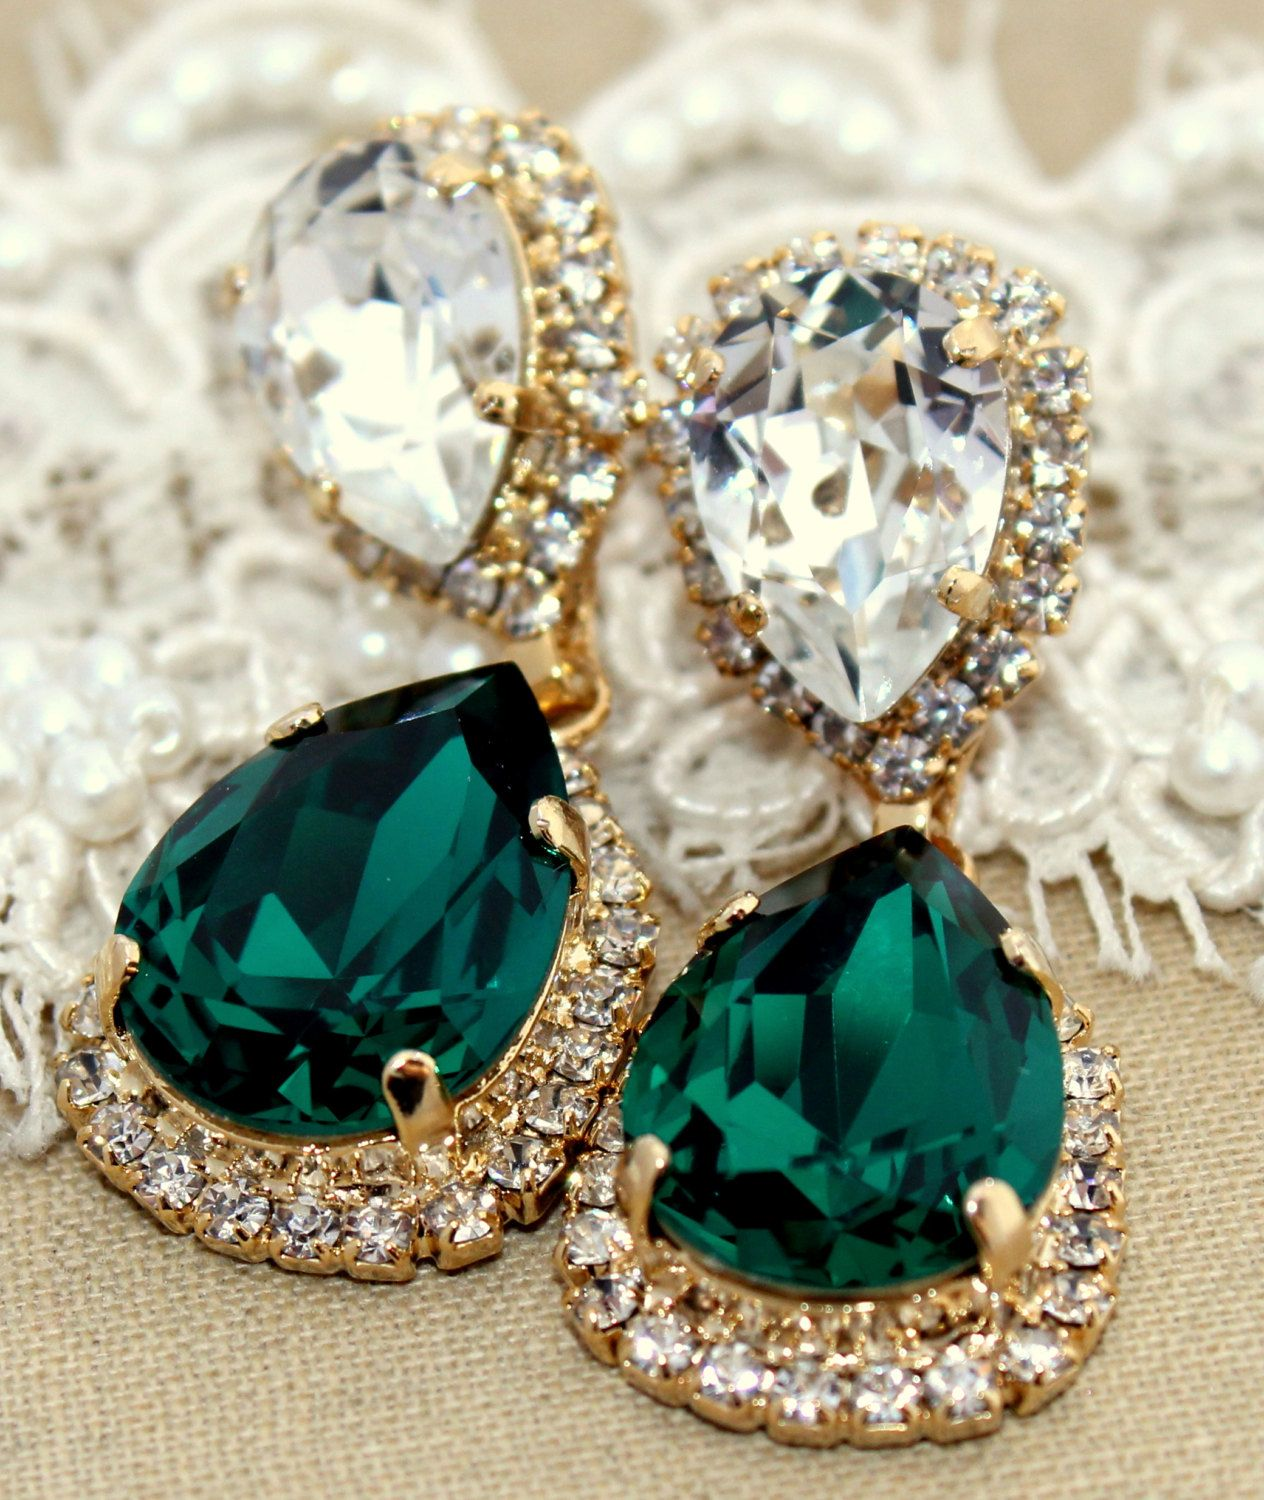 Emerald chandelier earring 14 k plated gold earrings by iloniti emerald chandelier earring estate earrings drop emerald earrings 14 k plated gold earrings real swarovski green emerald crystals mozeypictures Choice Image